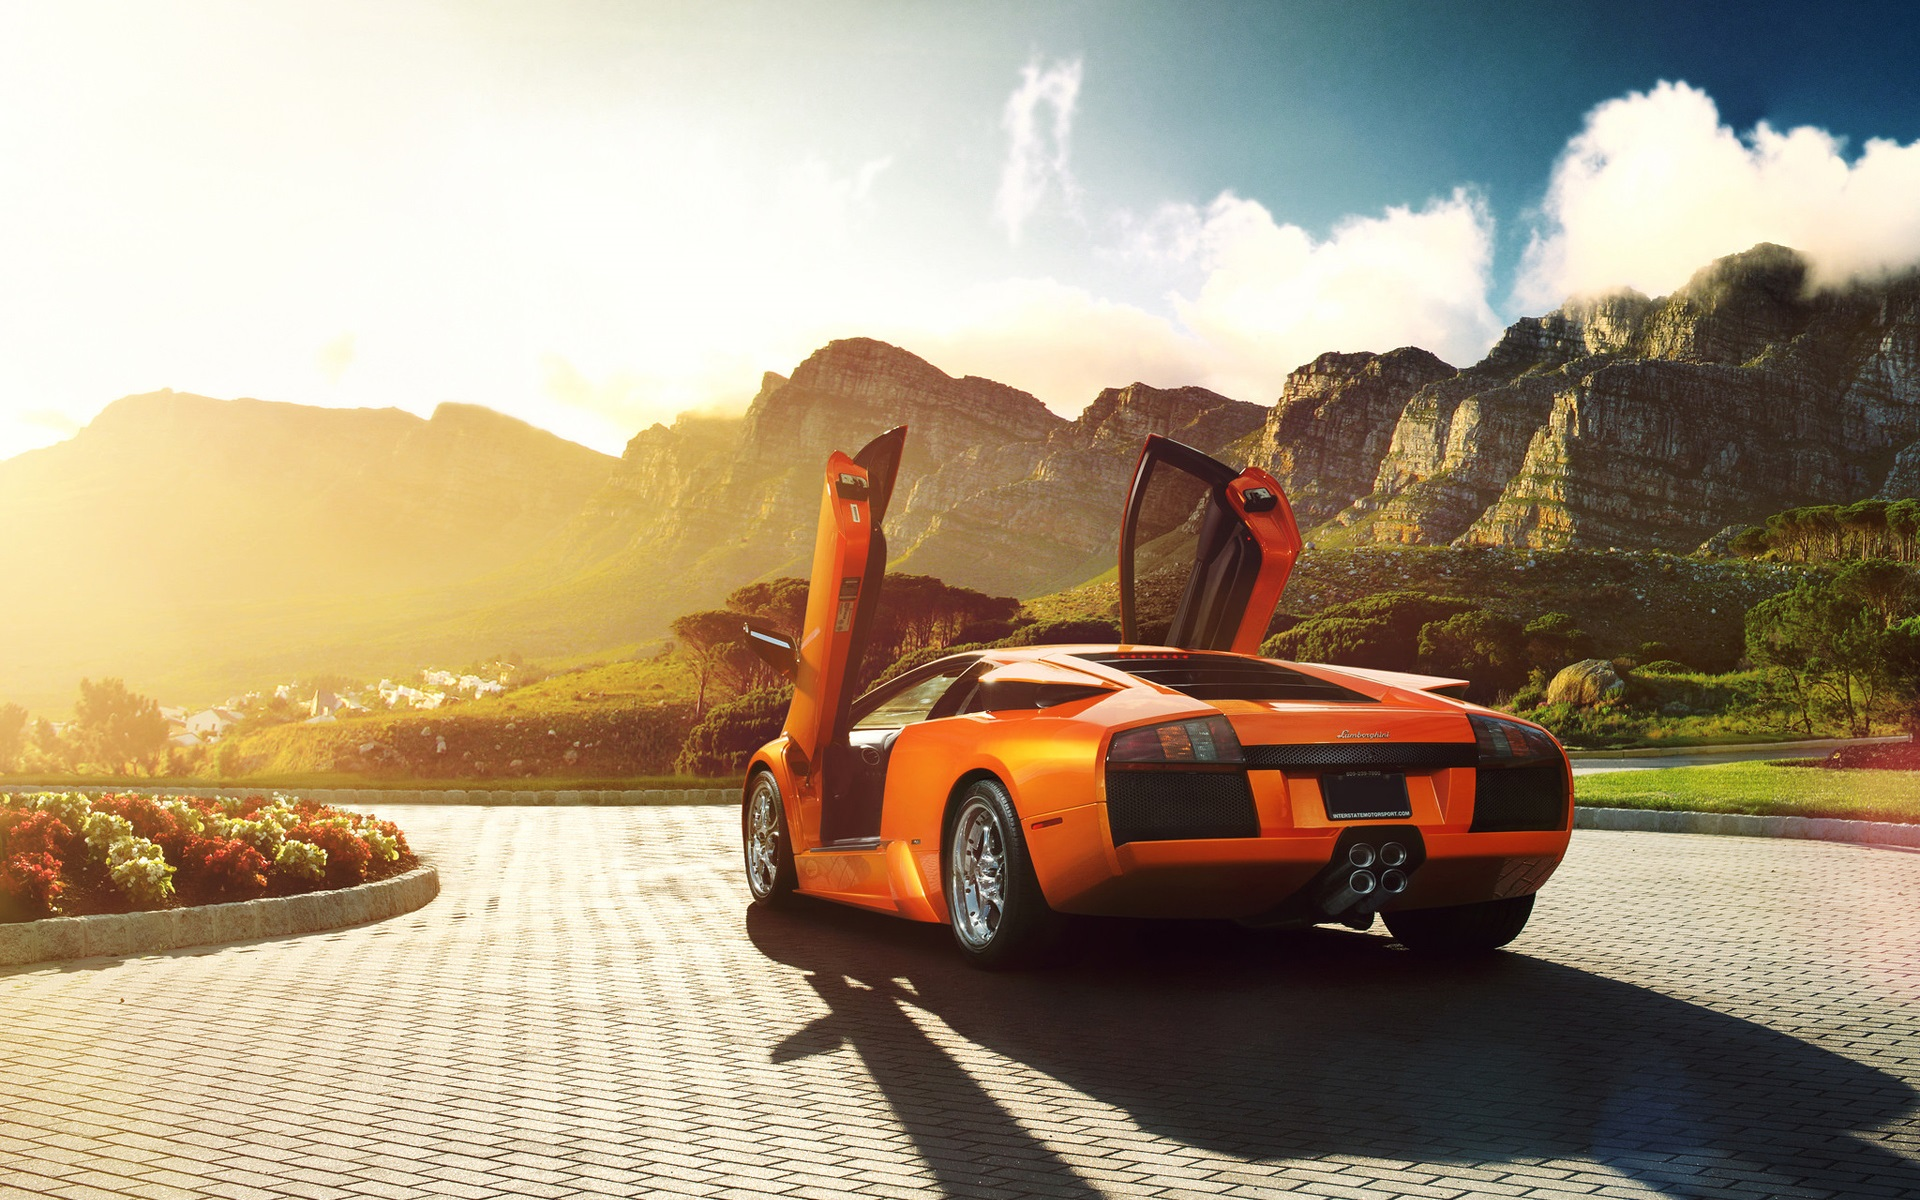 Wallpaper Lamborghini Murcielago V12 Orange Supercar Back View